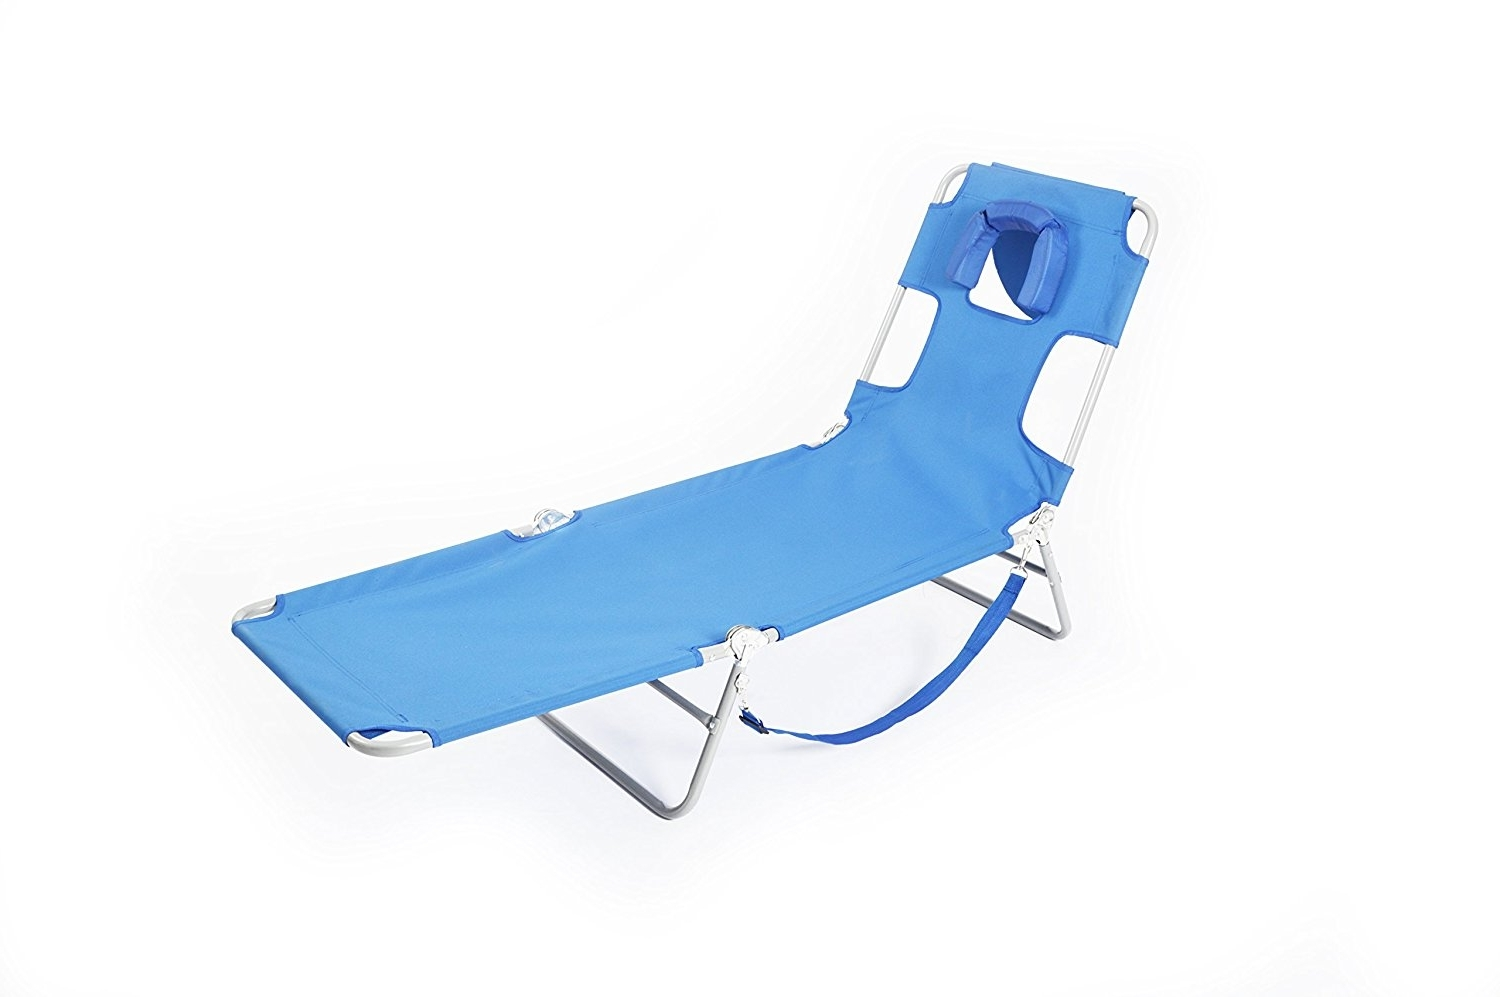 Amazon: Ostrich Lounge Chaise: Garden & Outdoor Throughout Well Liked Lounge Chaise Chair By Ostrich (View 14 of 15)